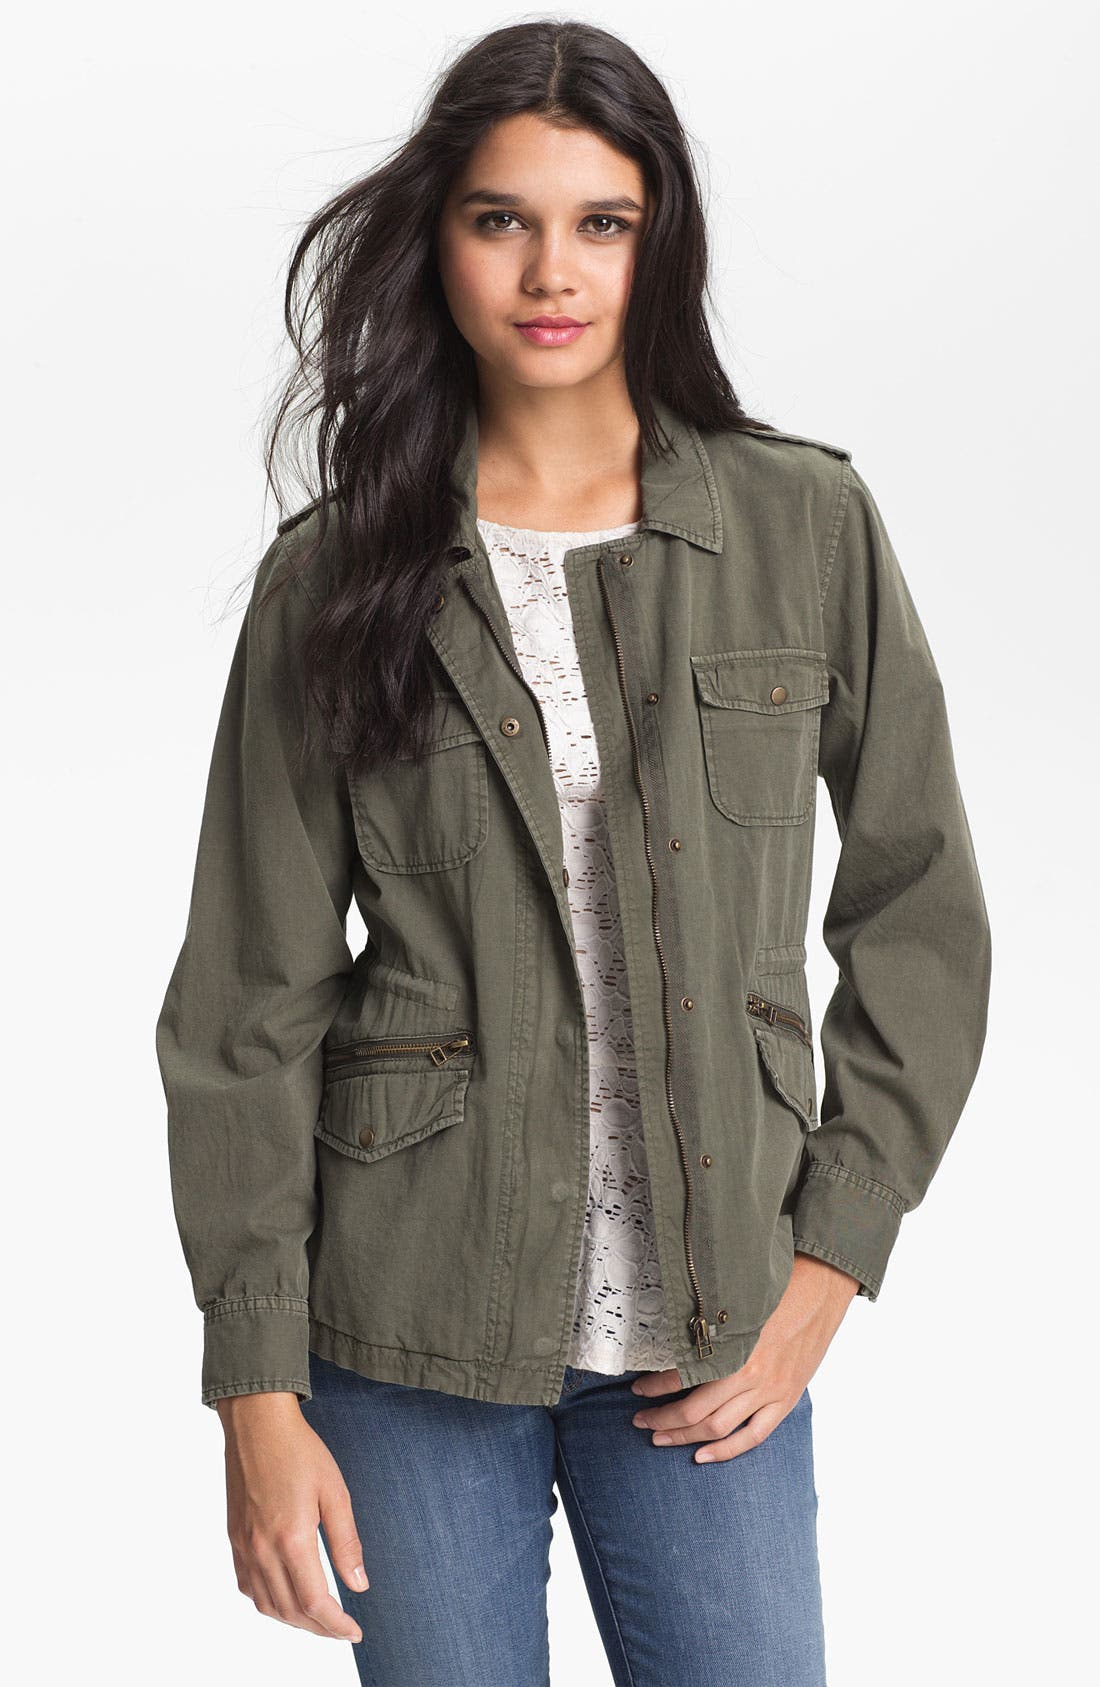 Lily Aldridge for Velvet by Graham & Spencer Army Jacket,                         Main,                         color, FOREST GREEN